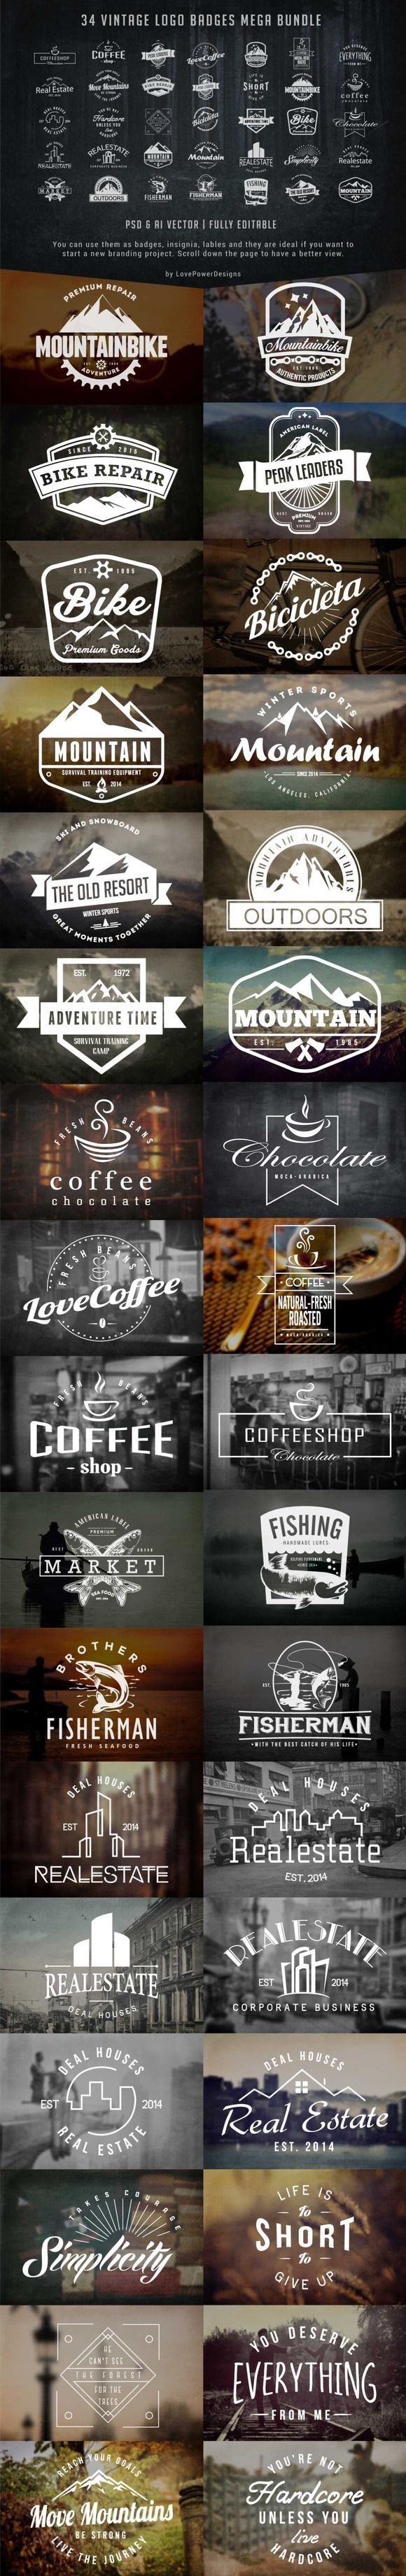 Vintage Logo Badges Bundle by lovepower on Creative Market